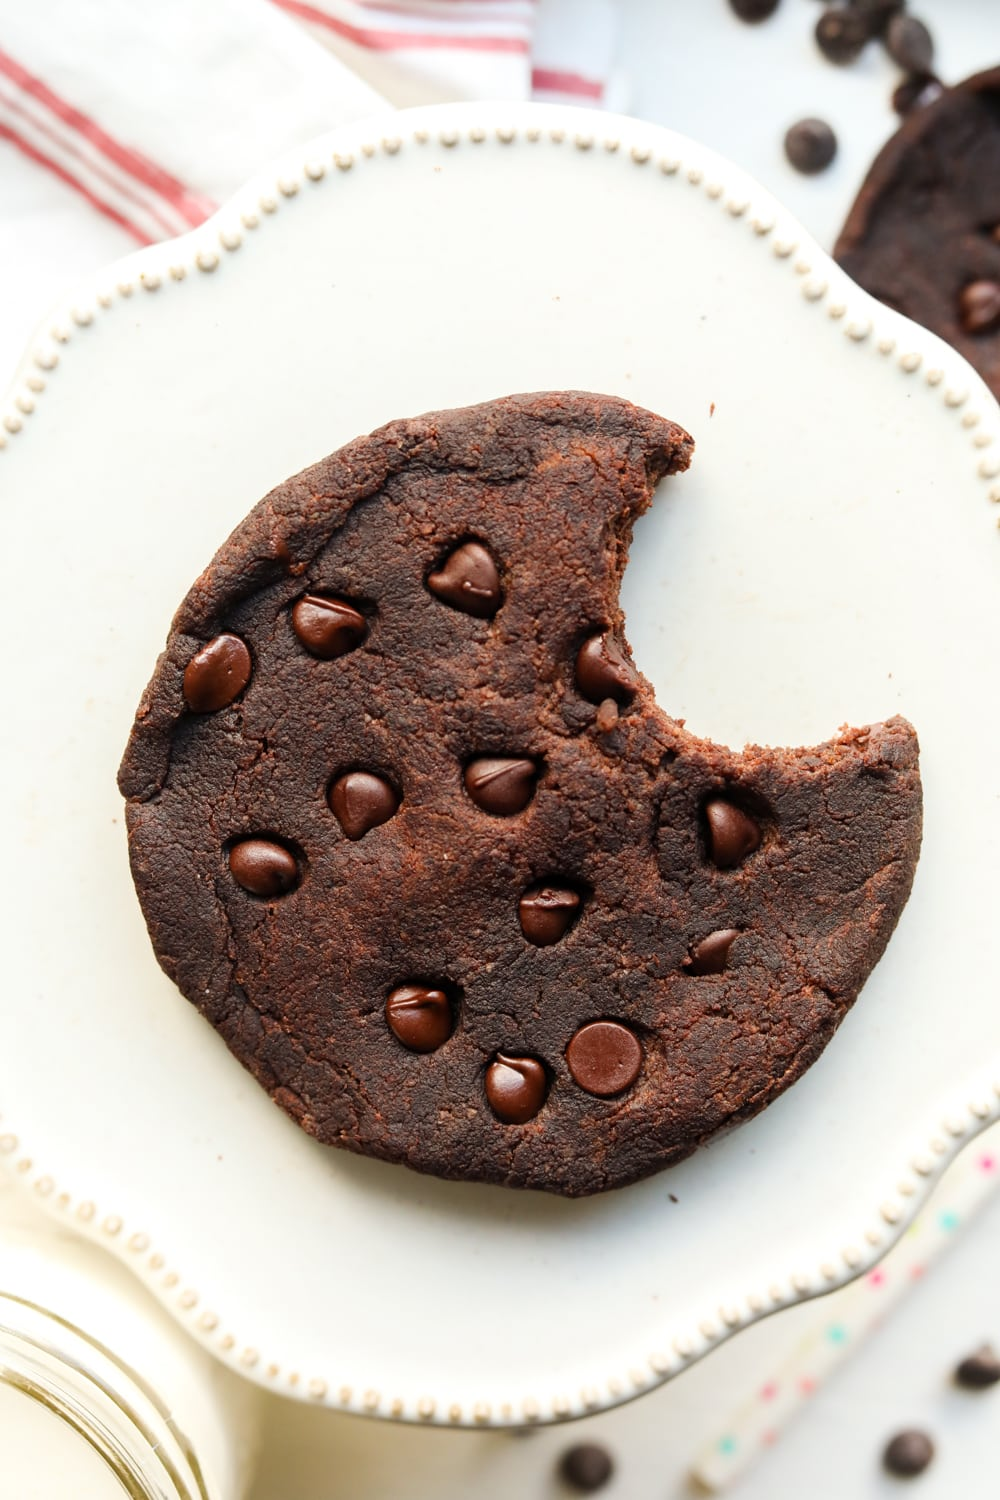 A double chocolate chip cookie with a bite taken out of it.